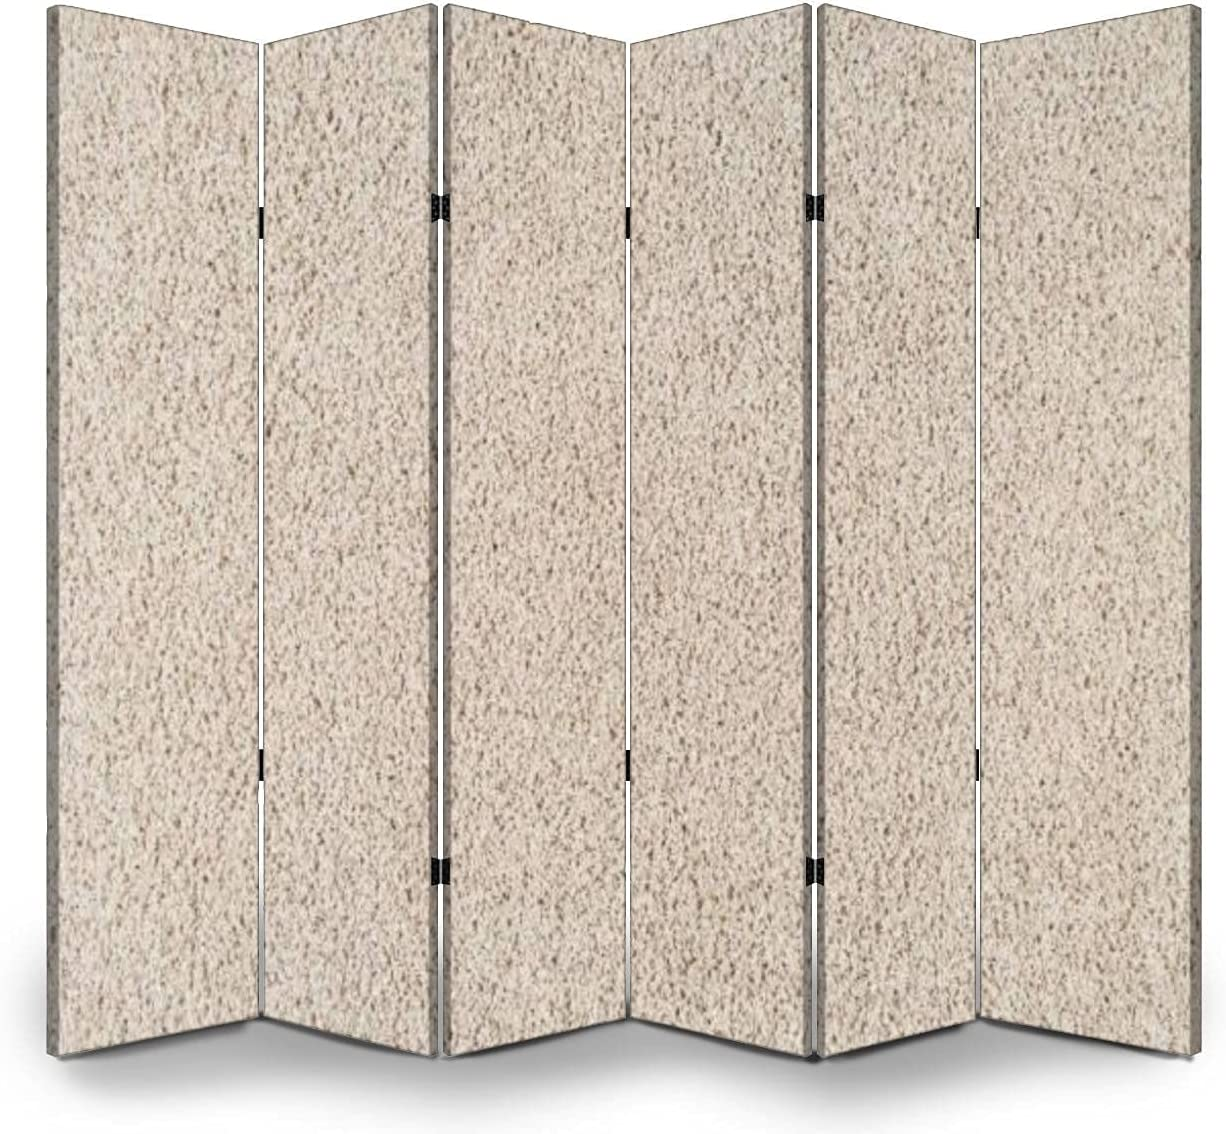 6 Panels Room Divider Luxury goods Screen Today's only Background Texture Fo Partition Rug